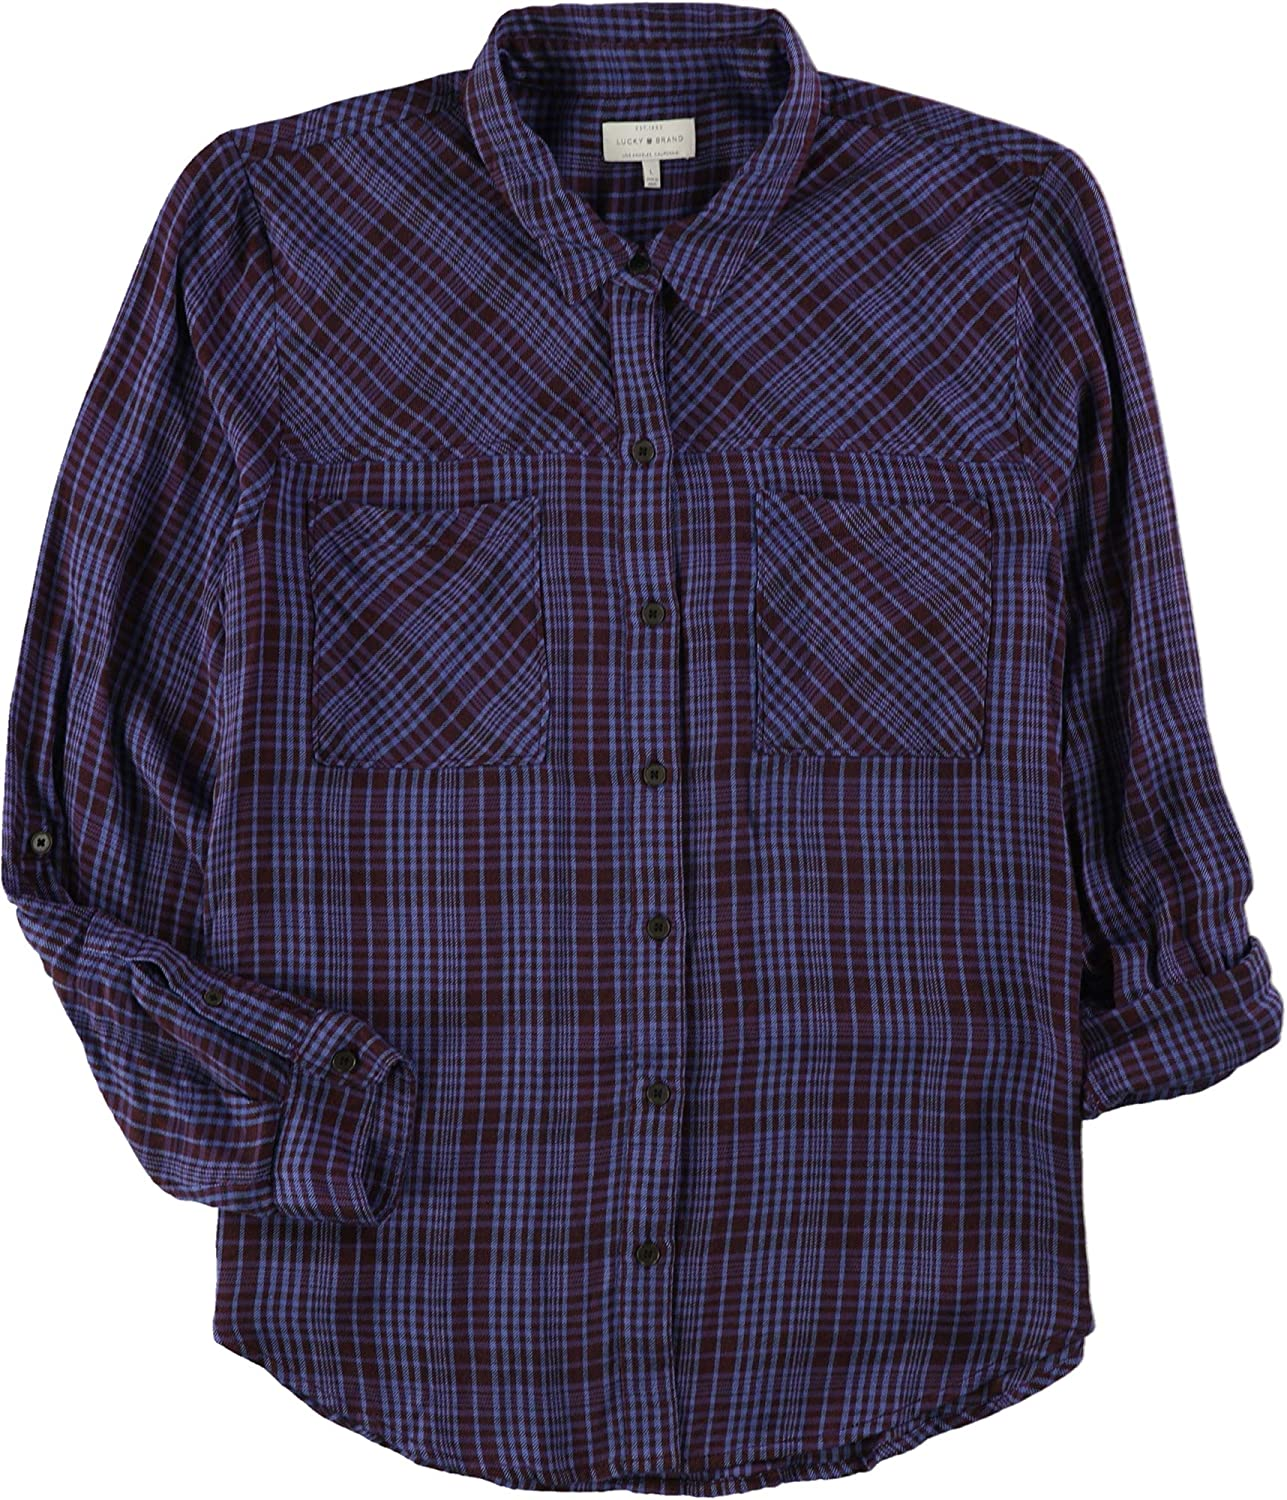 Lucky Brand Women's Plaid Shirt in Blue Multi